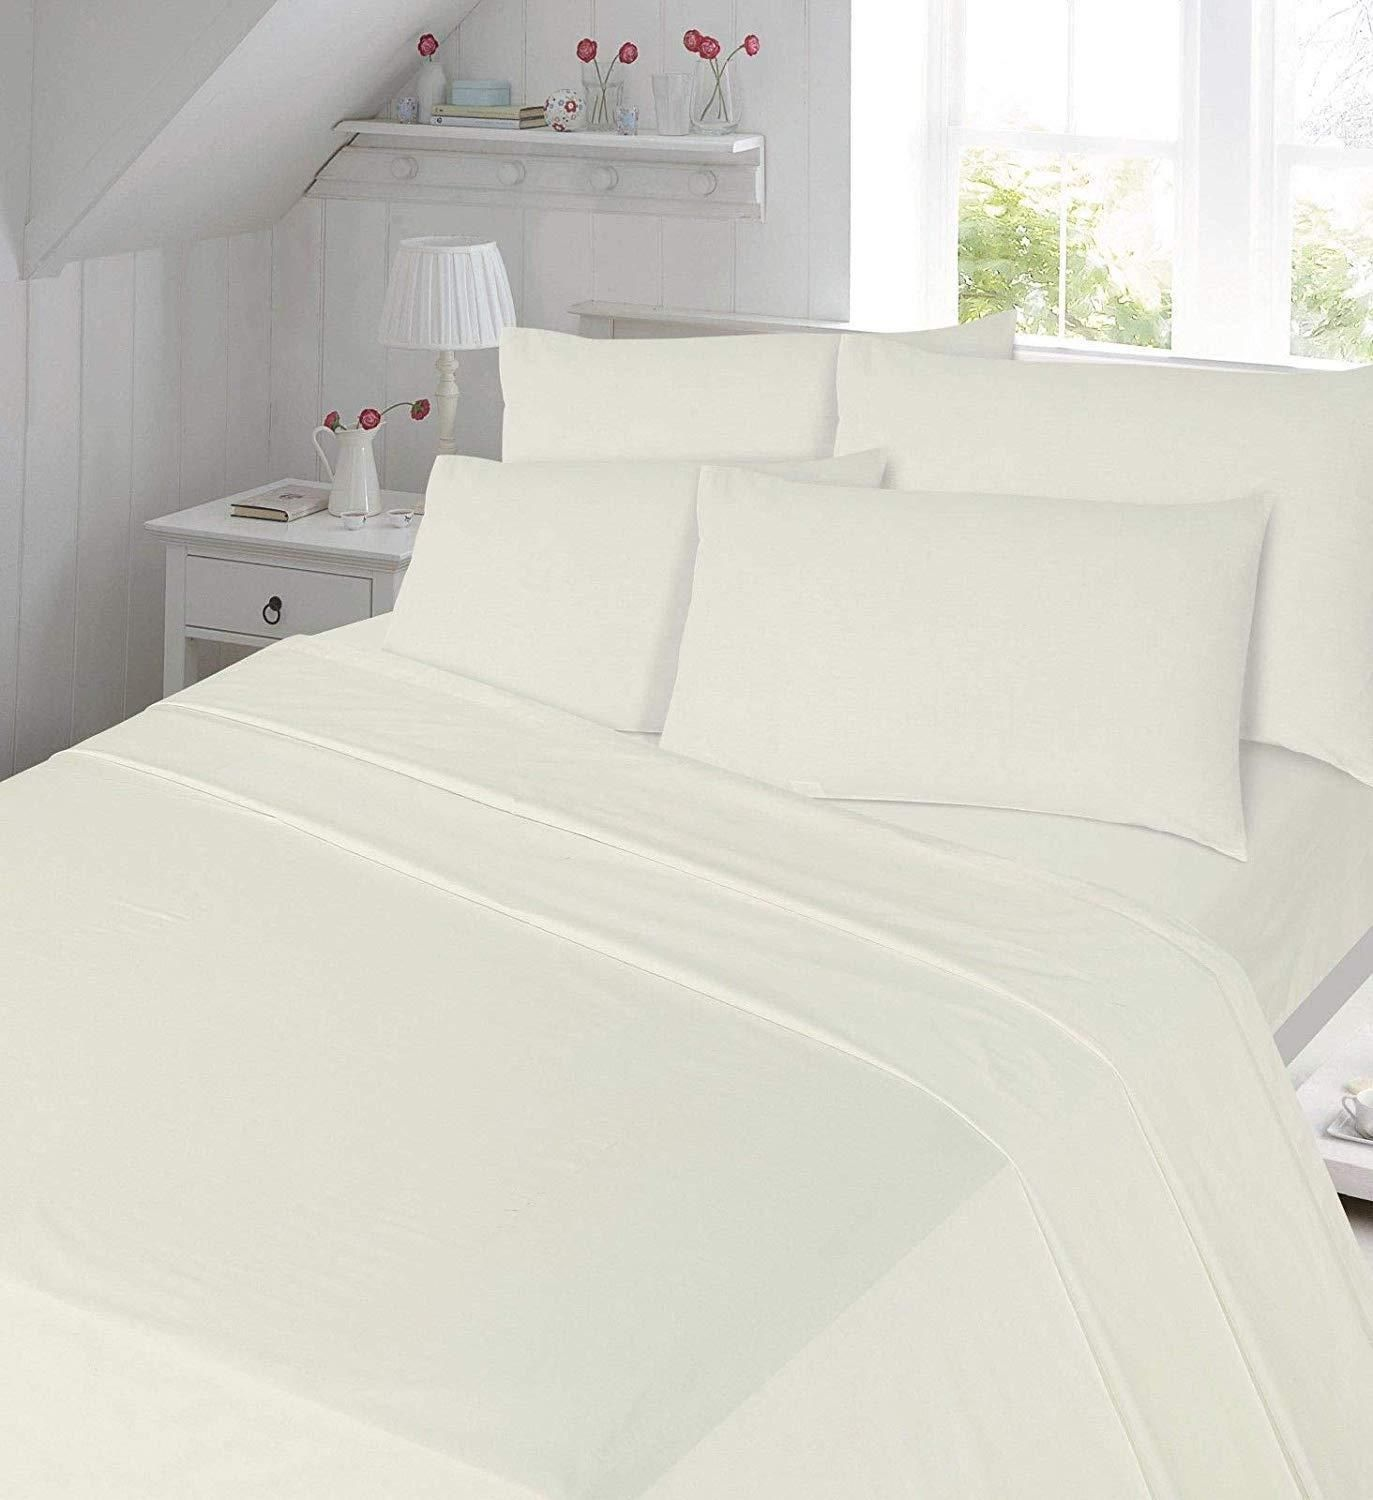 FLANNELETTE FITTED FLAT BED SHEET SET 100/% BRUSHED COTTON THERMAL PILLOW CASES